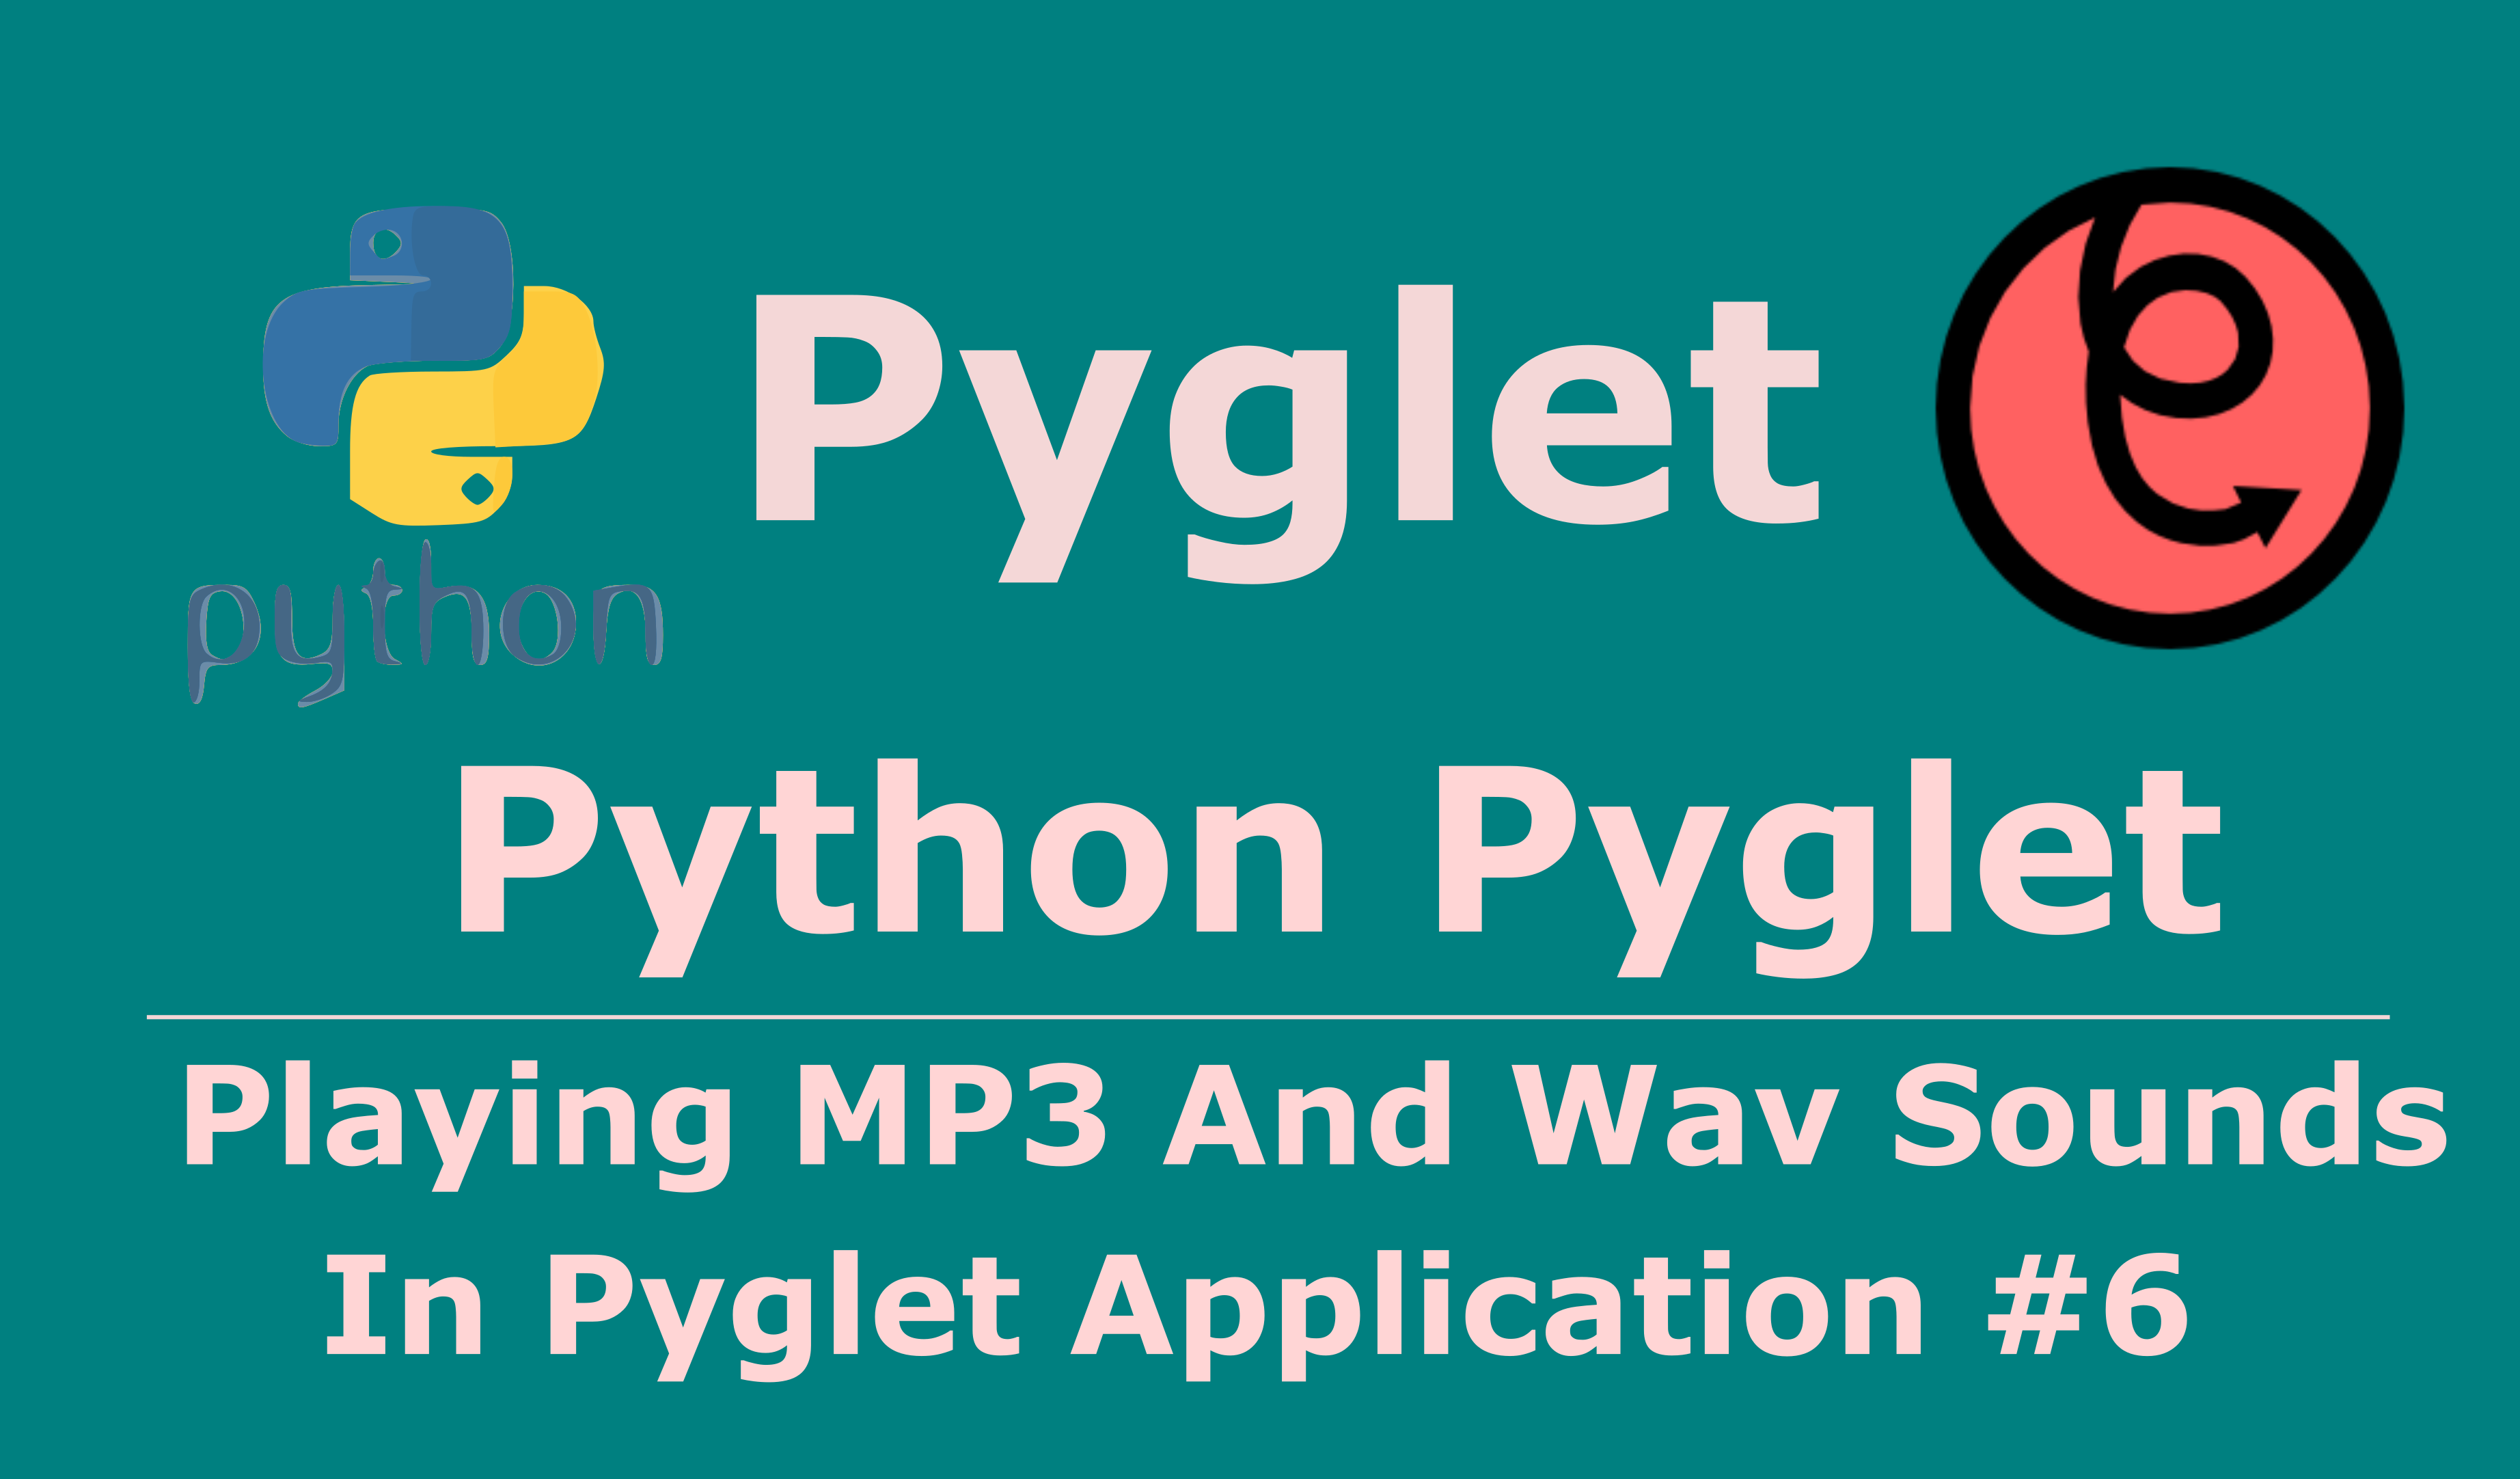 Python Pyglet Archives - Code Loop